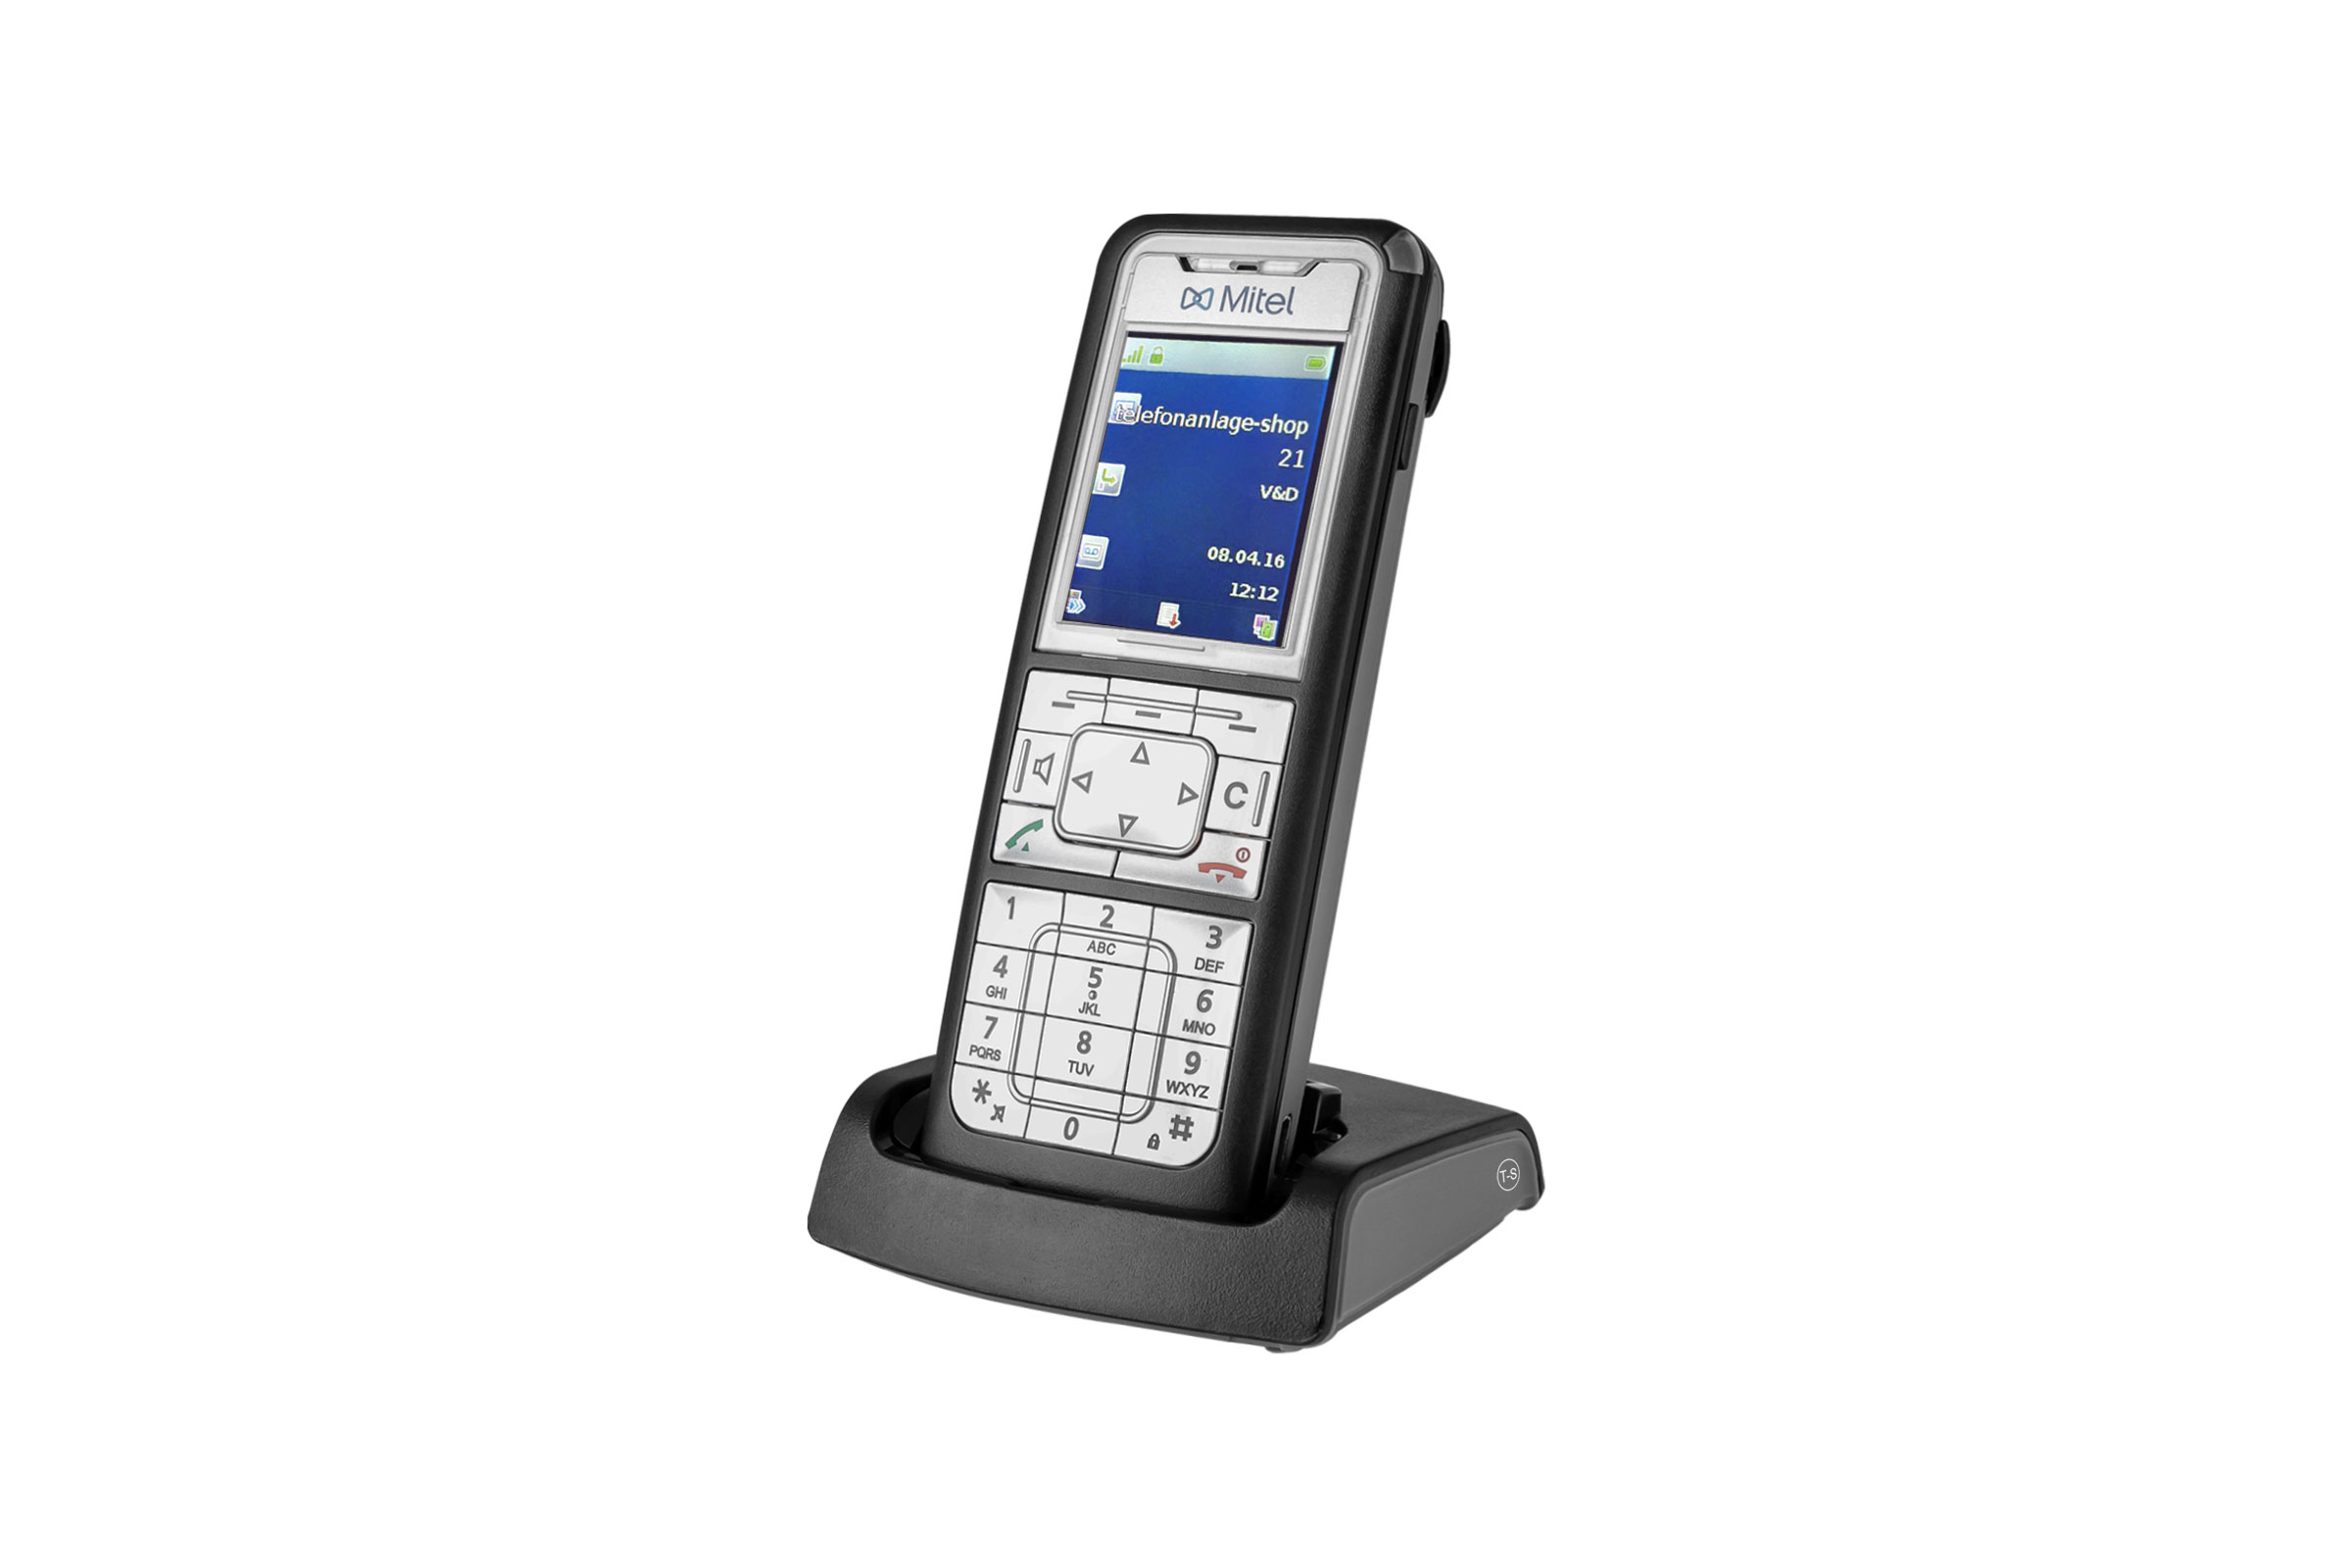 Vollansicht - Mitel 622 DECT Phone - Set mit Ladeschale (Aastra 622d)